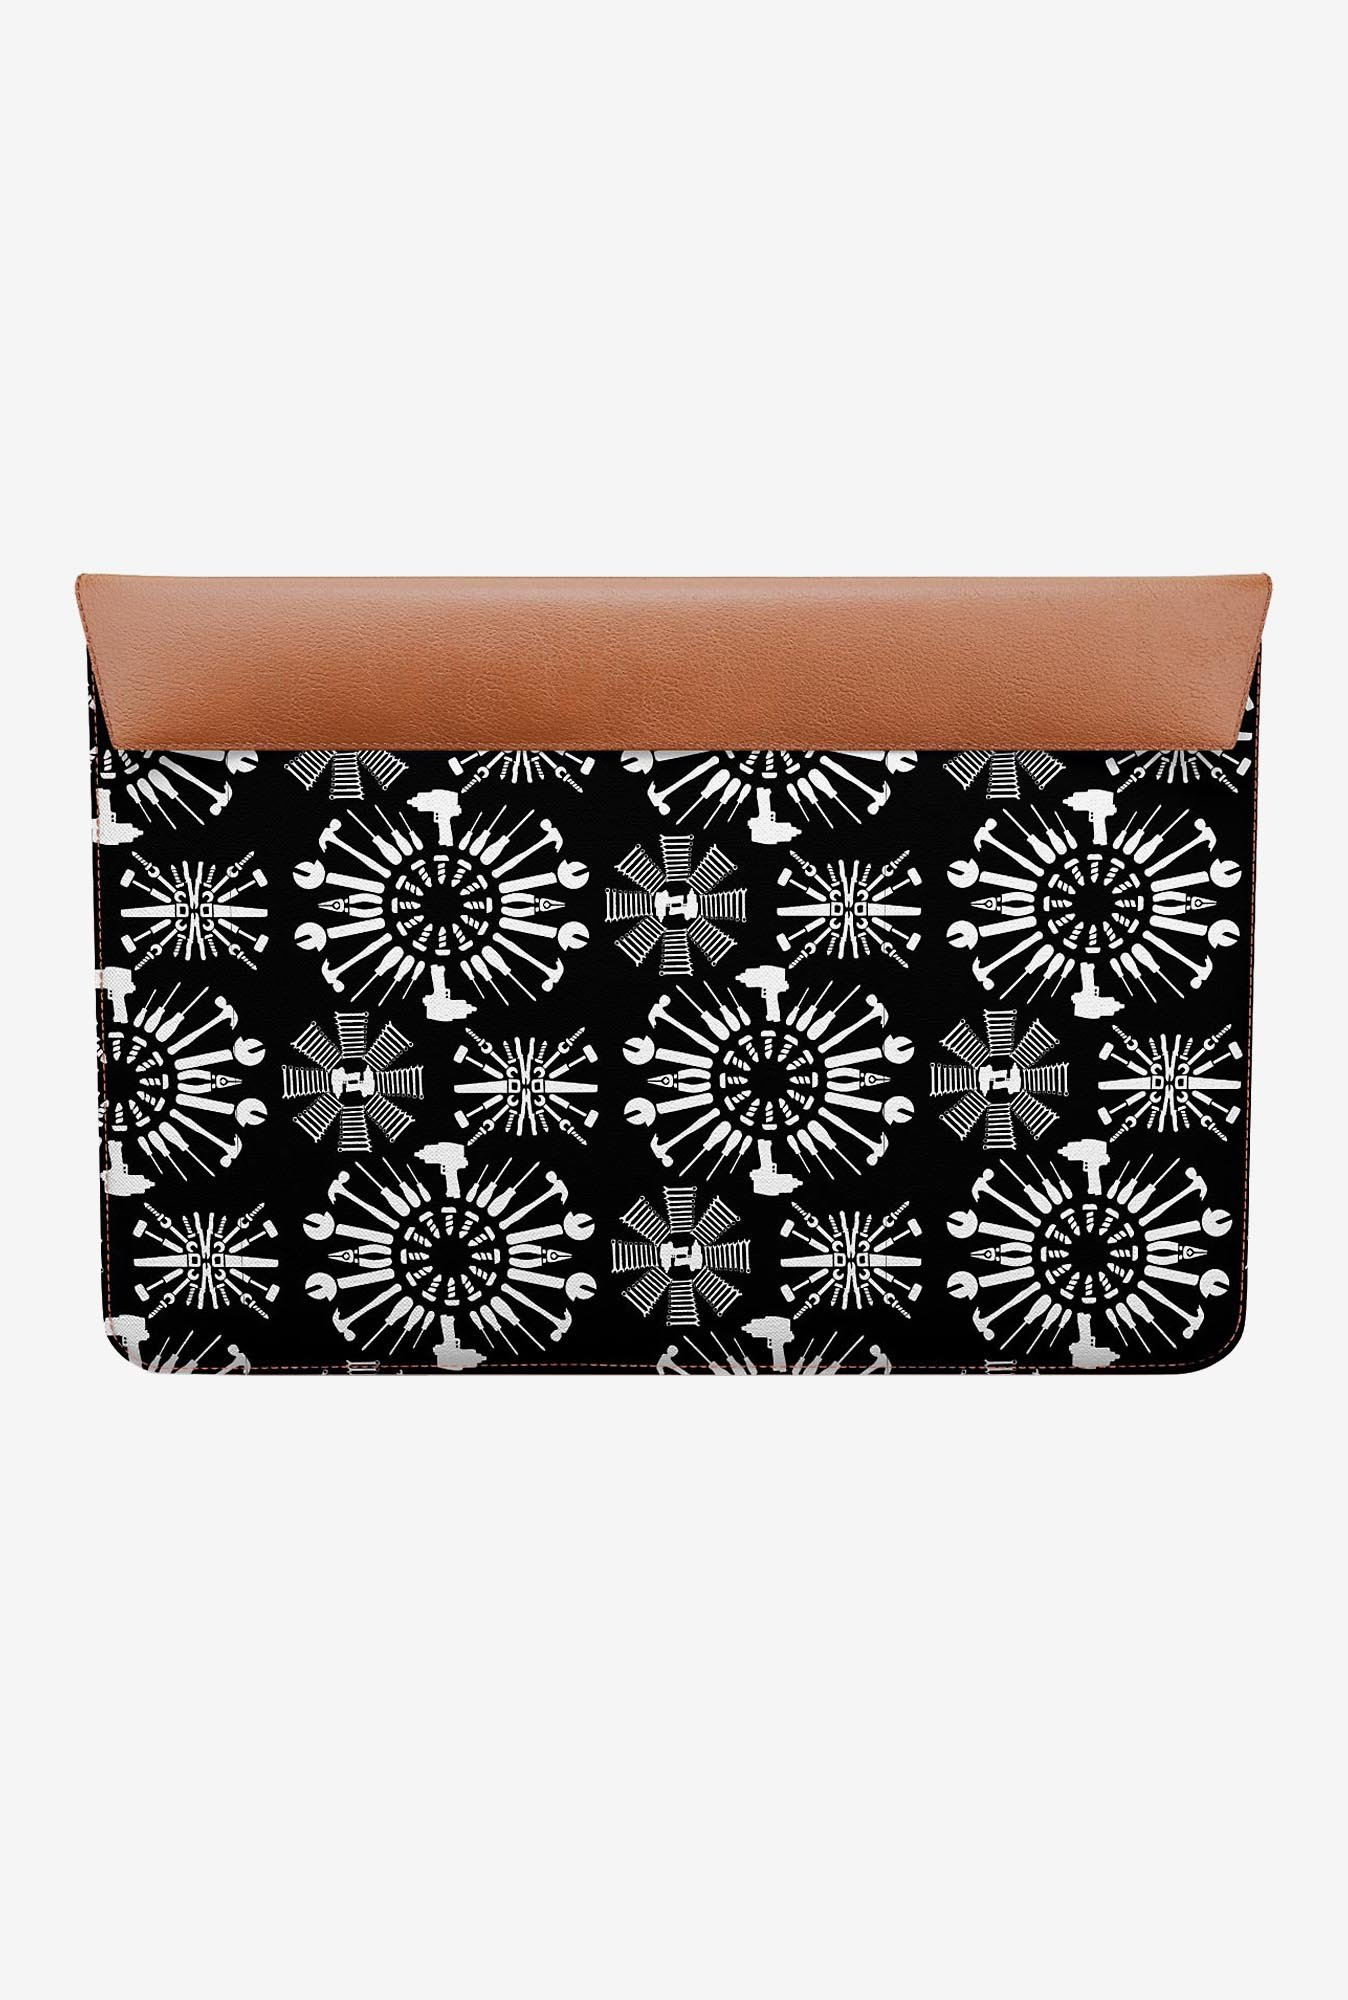 DailyObjects Tools Black MacBook 12 Envelope Sleeve